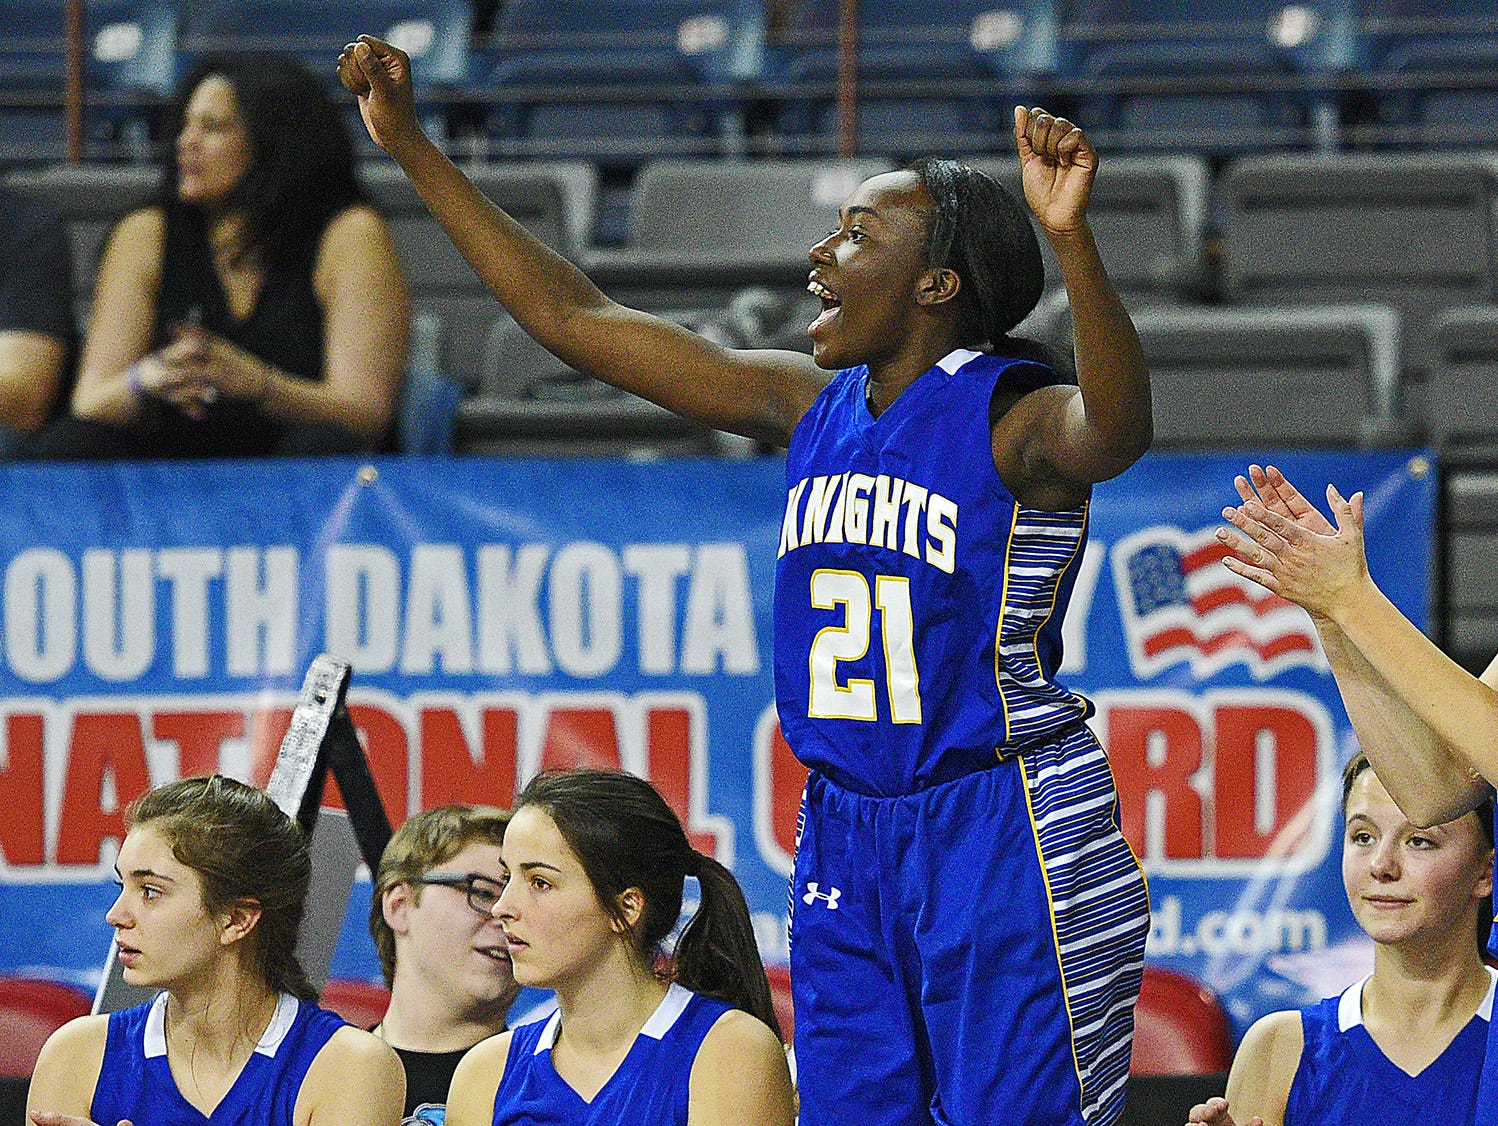 O'Gorman's Nyanwel Arop (21) reacts from the bench after a teammate scored during a 2017 SDHSAA Class AA State Girls Basketball quarterfinal game against Roosevelt Thursday, March 16, 2017, at Rushmore Plaza Civic Center in Rapid City. O'Gorman beat Roosevelt 37-33.